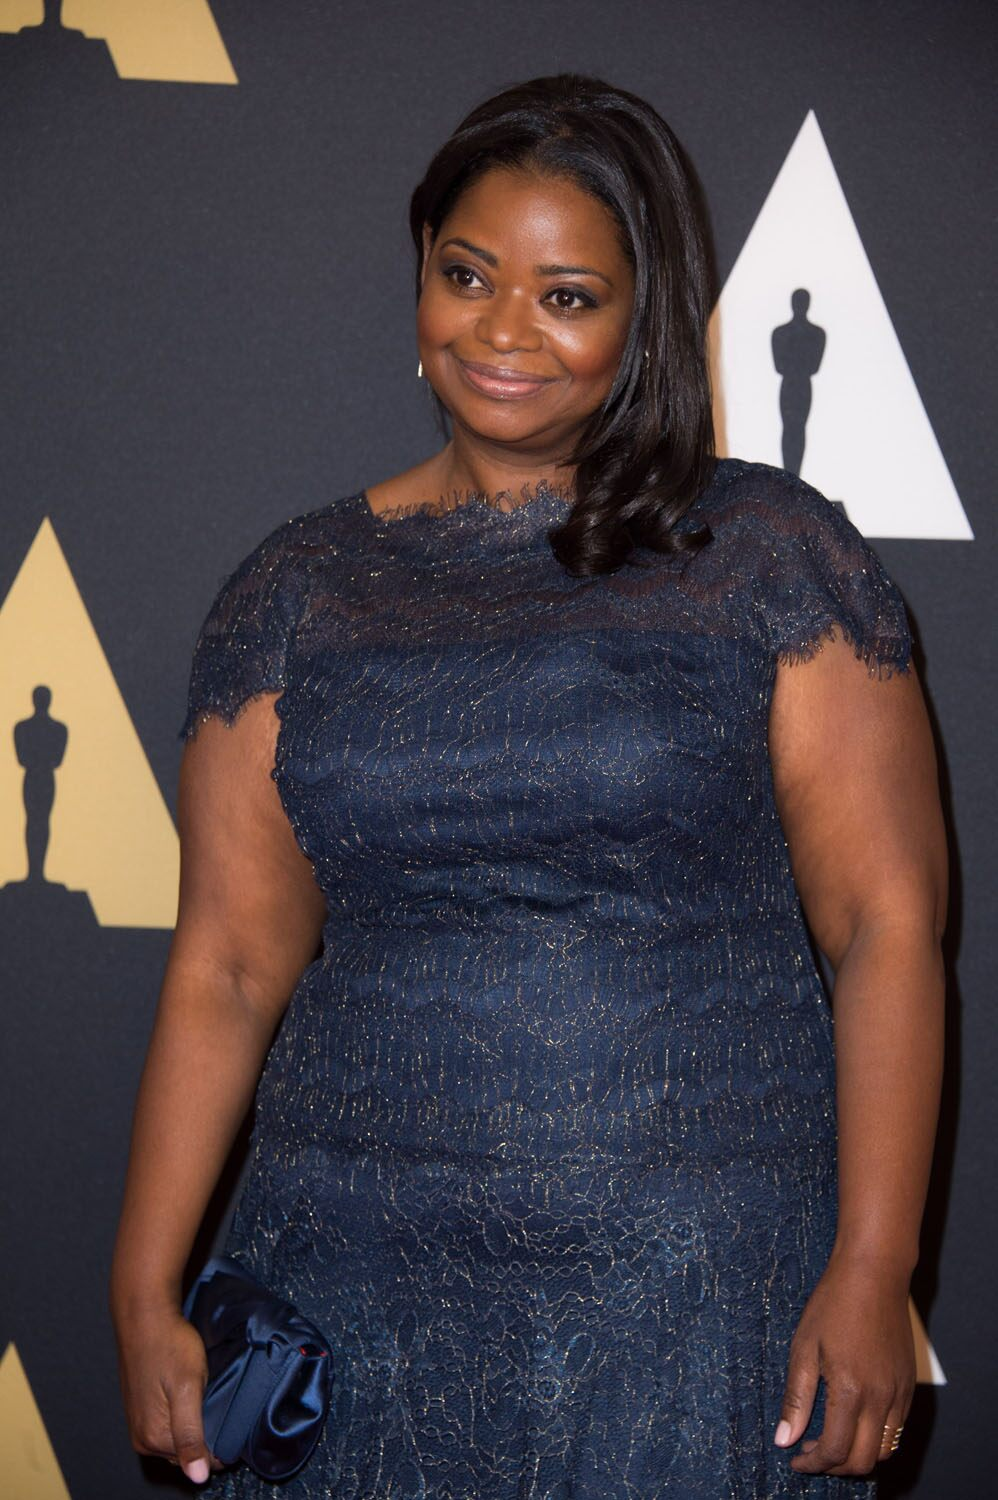 Octavia Spencer at the 6th Annual Governors Awards